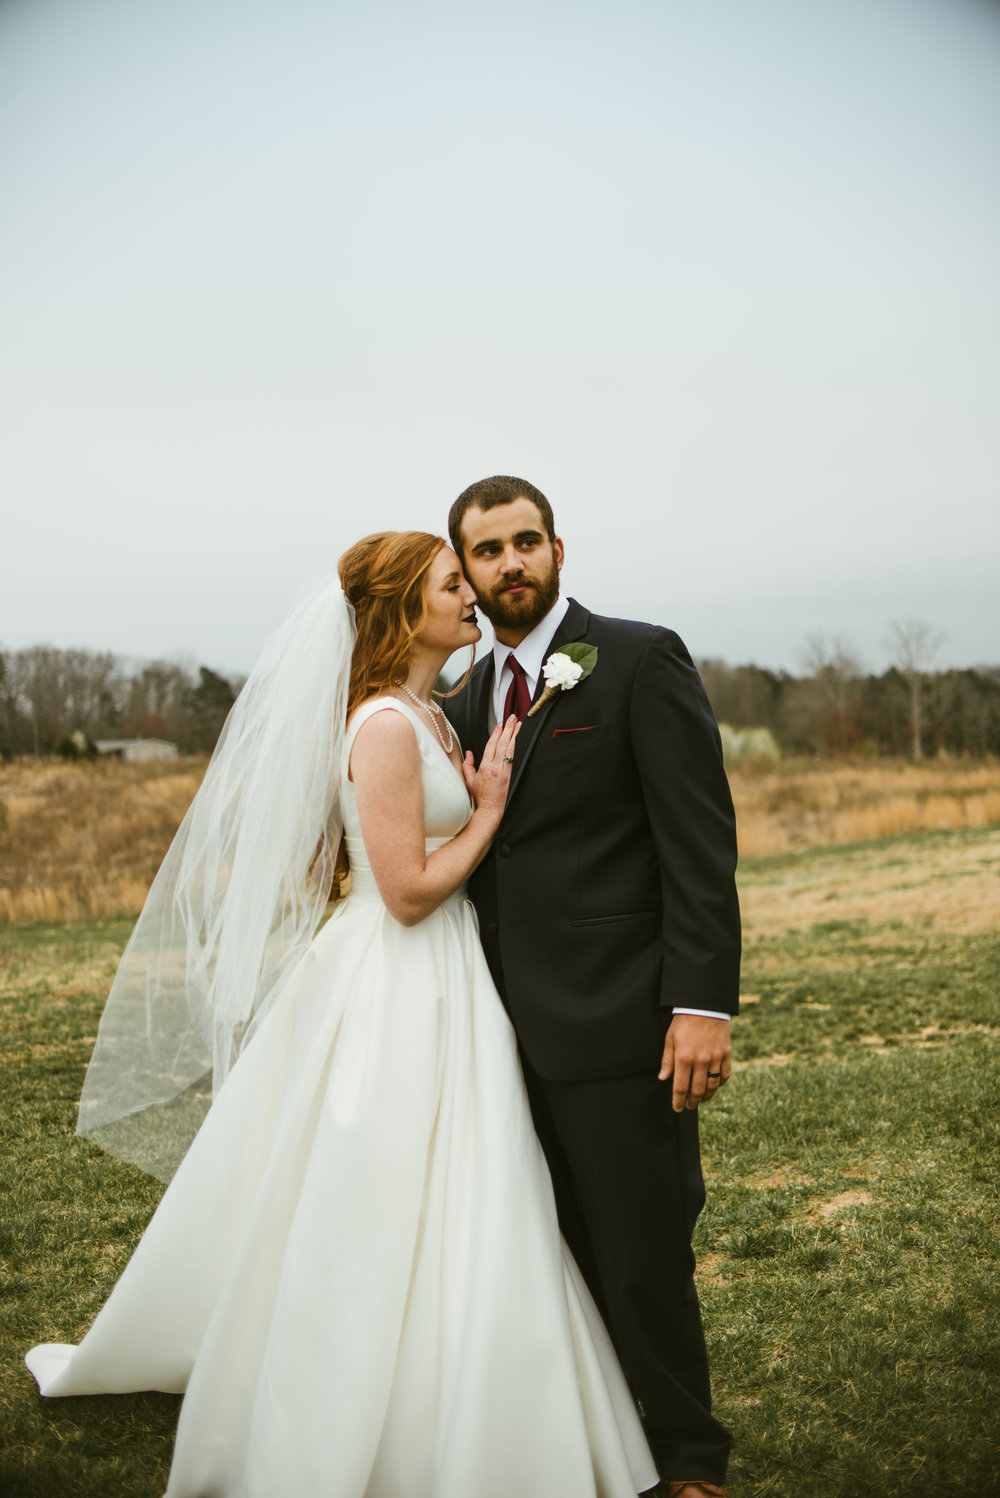 WonderlyCreative_Wedding_Emily&Zach_3.10.18_Edited-391.jpg